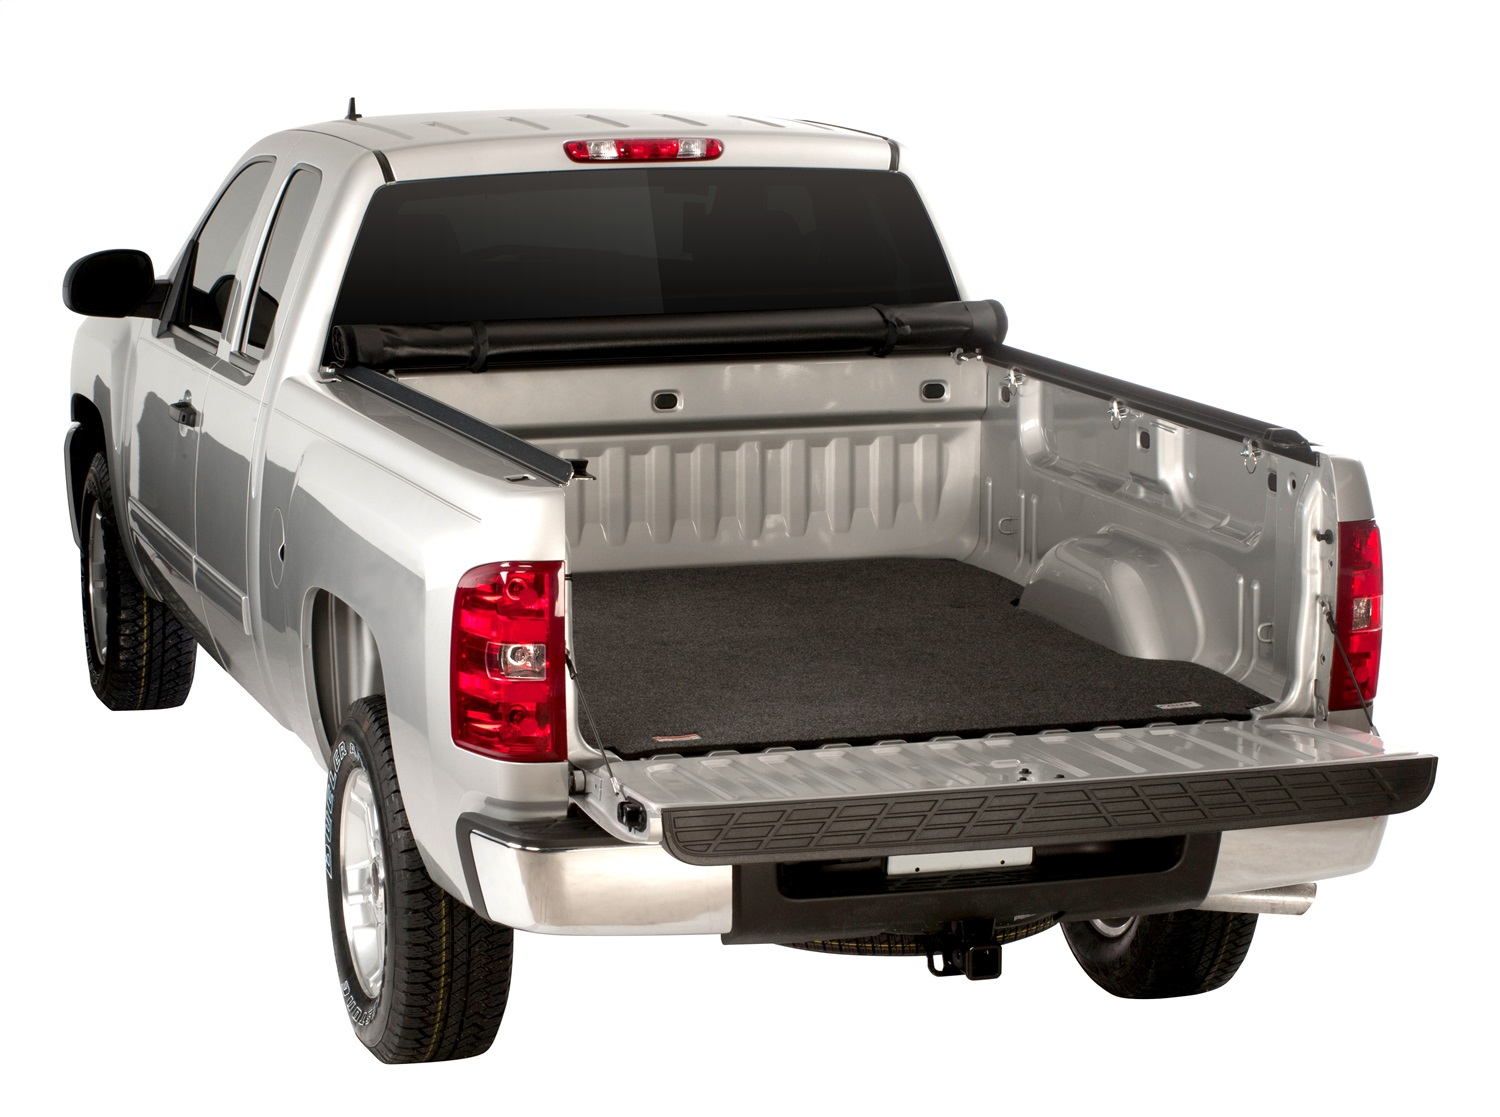 Access Cover Truck Bed Mat